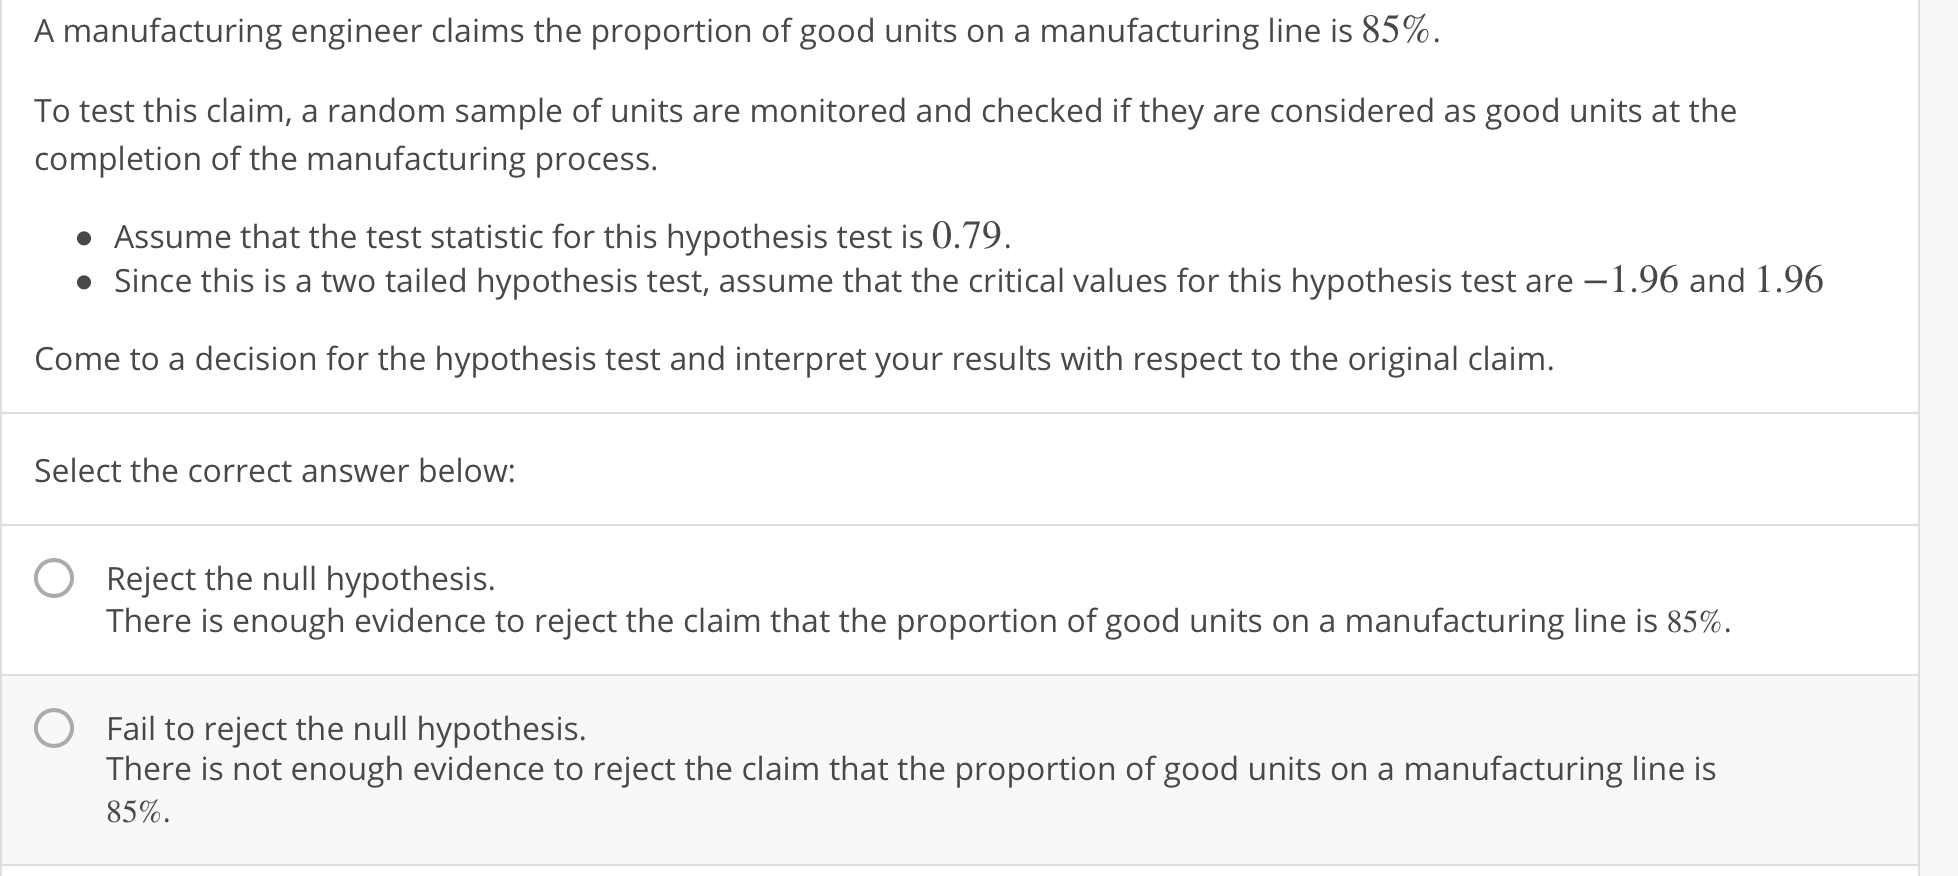 A manufacturing engineer claims the proportion of good units on a manufacturing line is 85%. To test this claim, a random sample of units are monitored and checked if they are considered as good units at the completion of the manufacturing process. Assume that the test statistic for this hypothesis test is 0.79. Since this is a two tailed hypothesis test, assume that the critical values for this hypothesis test are -1.96 and 1.96 Come to a decision for the hypothesis test and interpret your results with respect to the original claim. Select the correct answer below: OReject the null hypothesis. There is enough evidence to reject the claim that the proportion of good units on a manufacturing line is 85%. O Fail to reject the null hypothesis. There is not enough evidence to reject the claim that the proportion of good units on a manufacturing line is 85%.